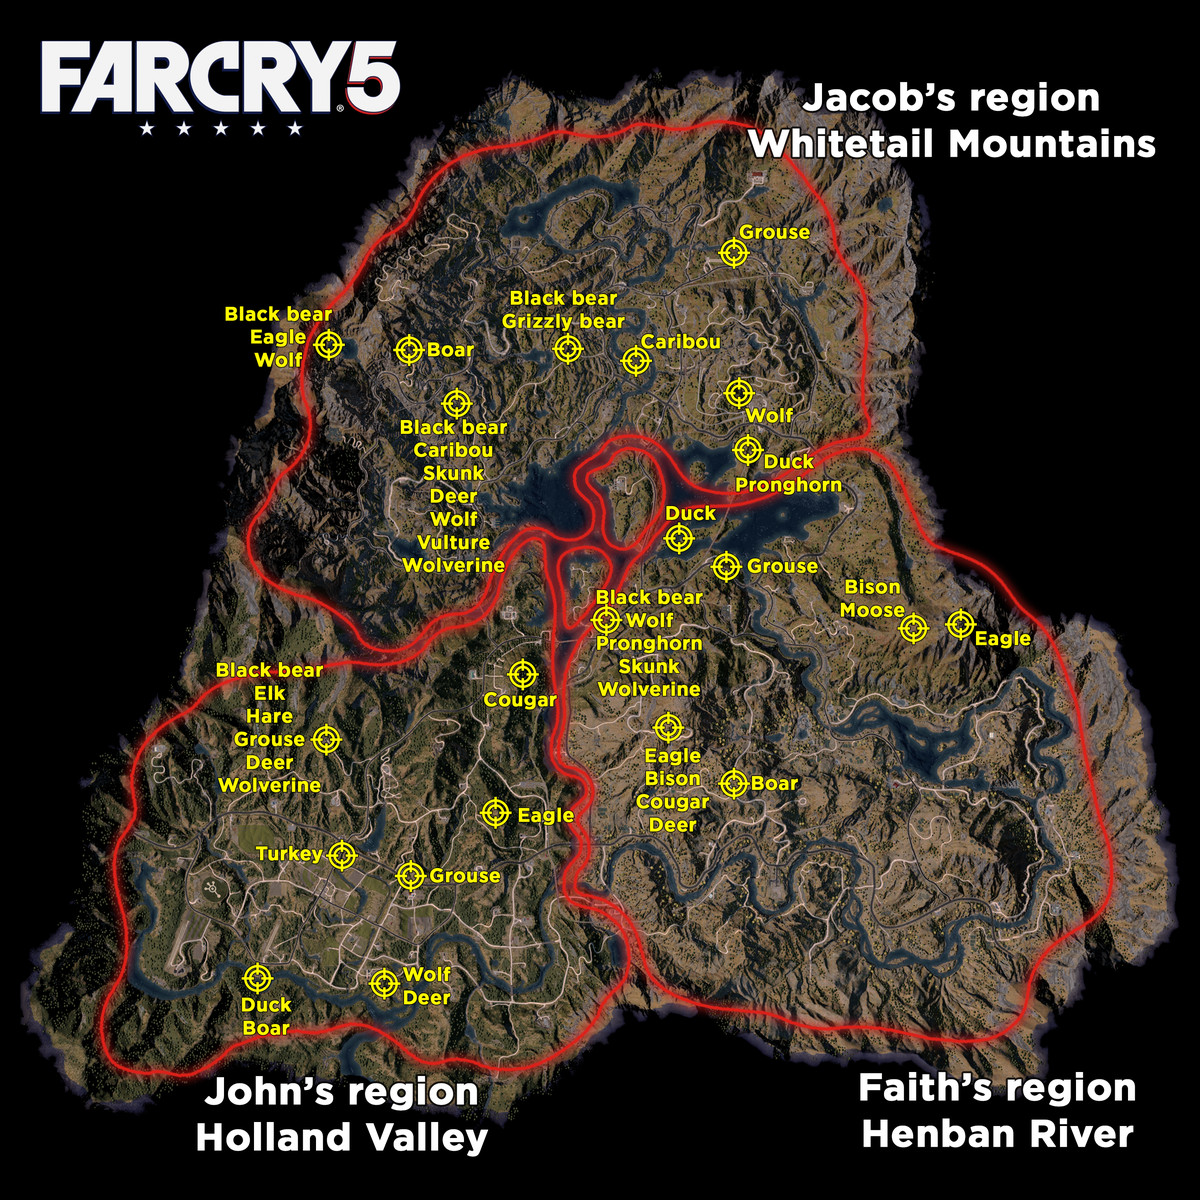 Far cry 5 best hunting locations polygon far cry 5 hunting map and animal locations gumiabroncs Gallery